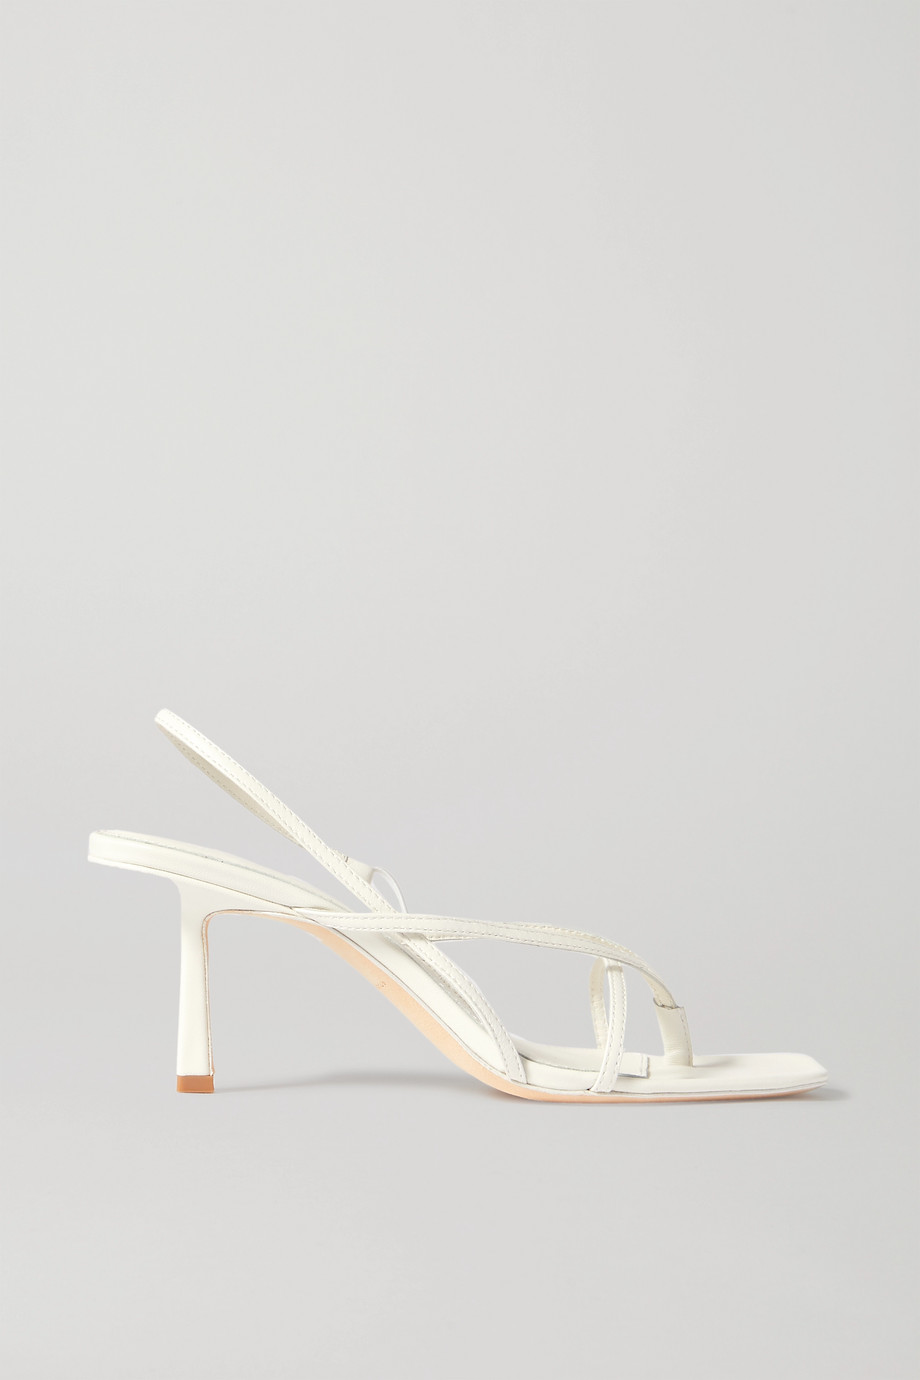 STUDIO AMELIA 2.4 leather sandals